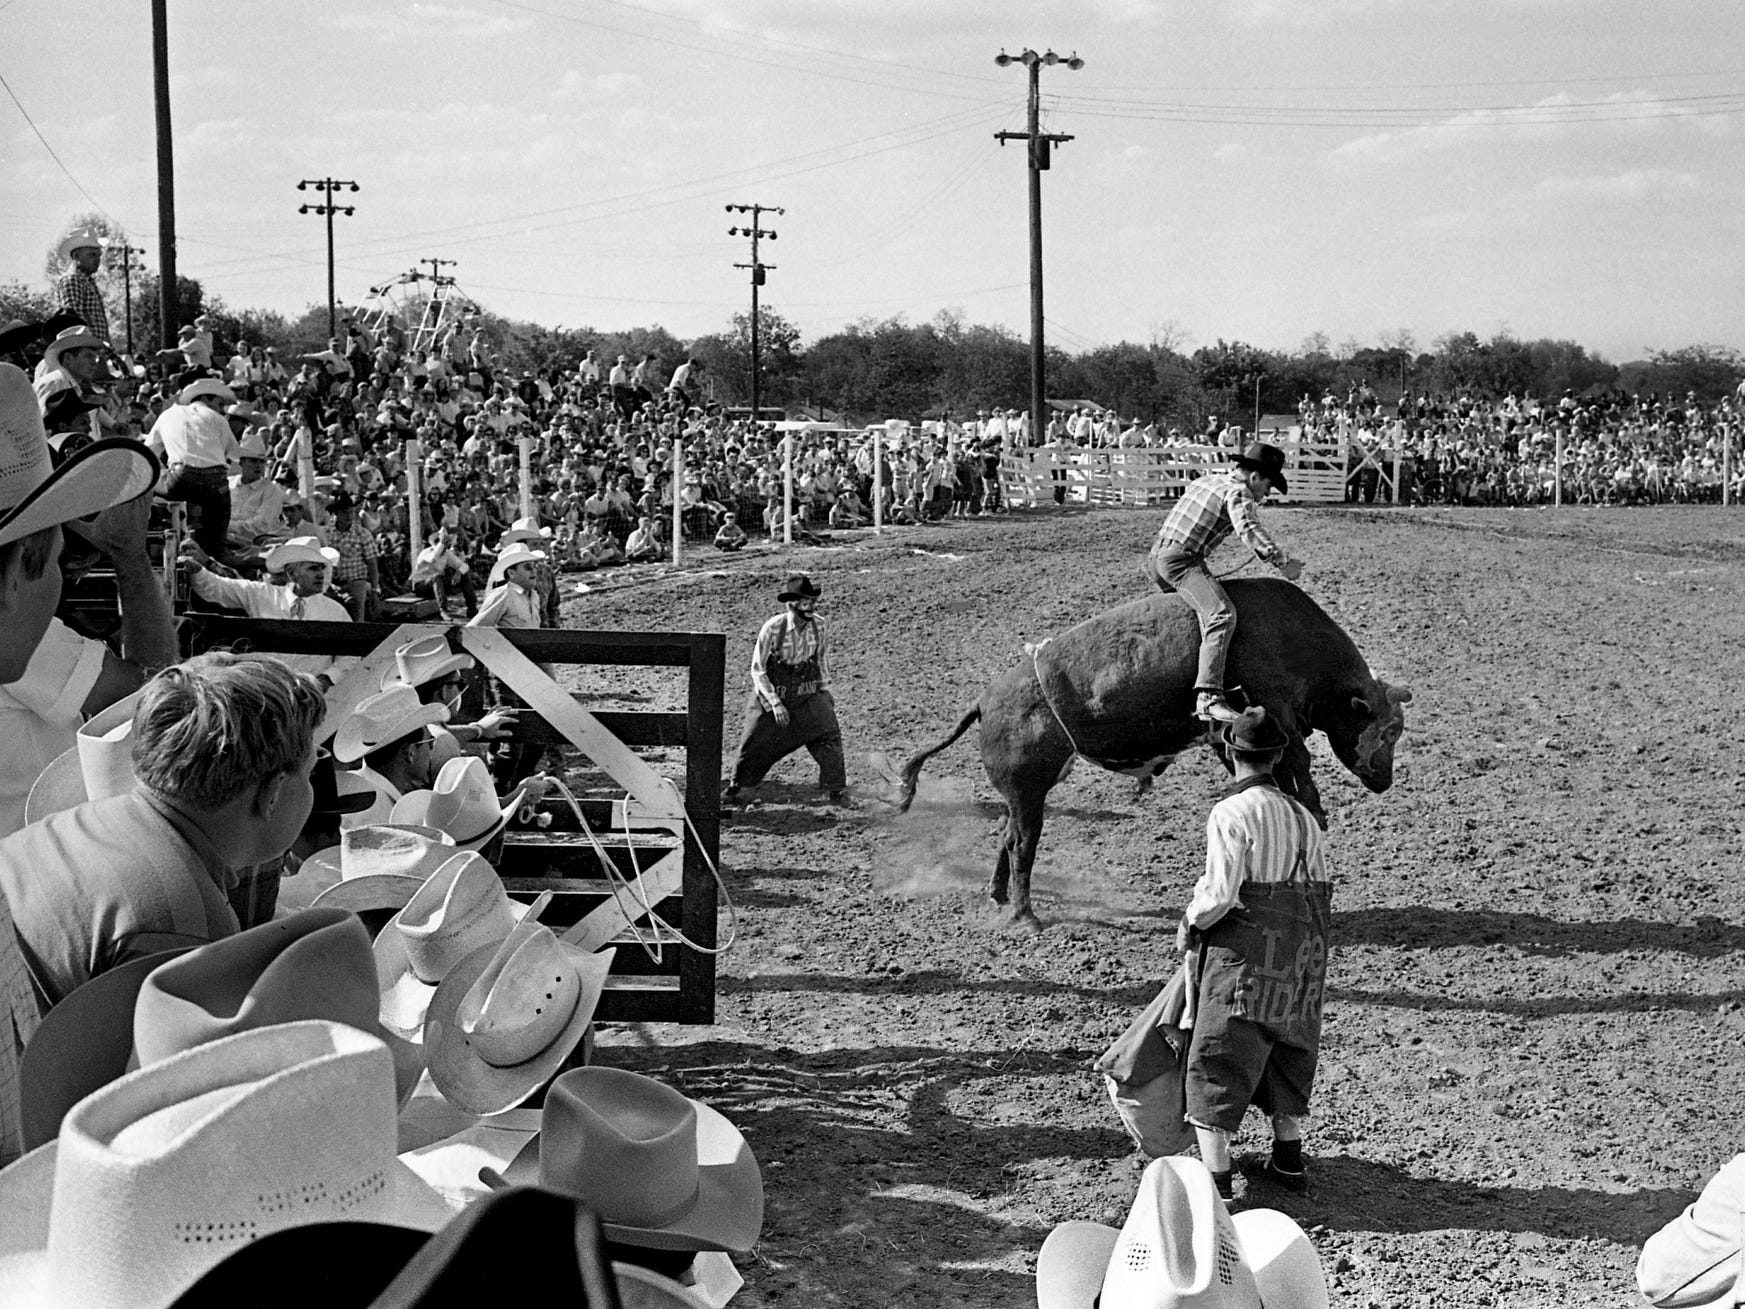 A packed house at the County Center on Columbia Highway watches a bull rider try his luck on a snorting, leaping Brahma during the 19th annual Franklin rodeo May 4, 1968. The event was sponsored by the Franklin Rotary Club, with proceeds donated to various charity projects.